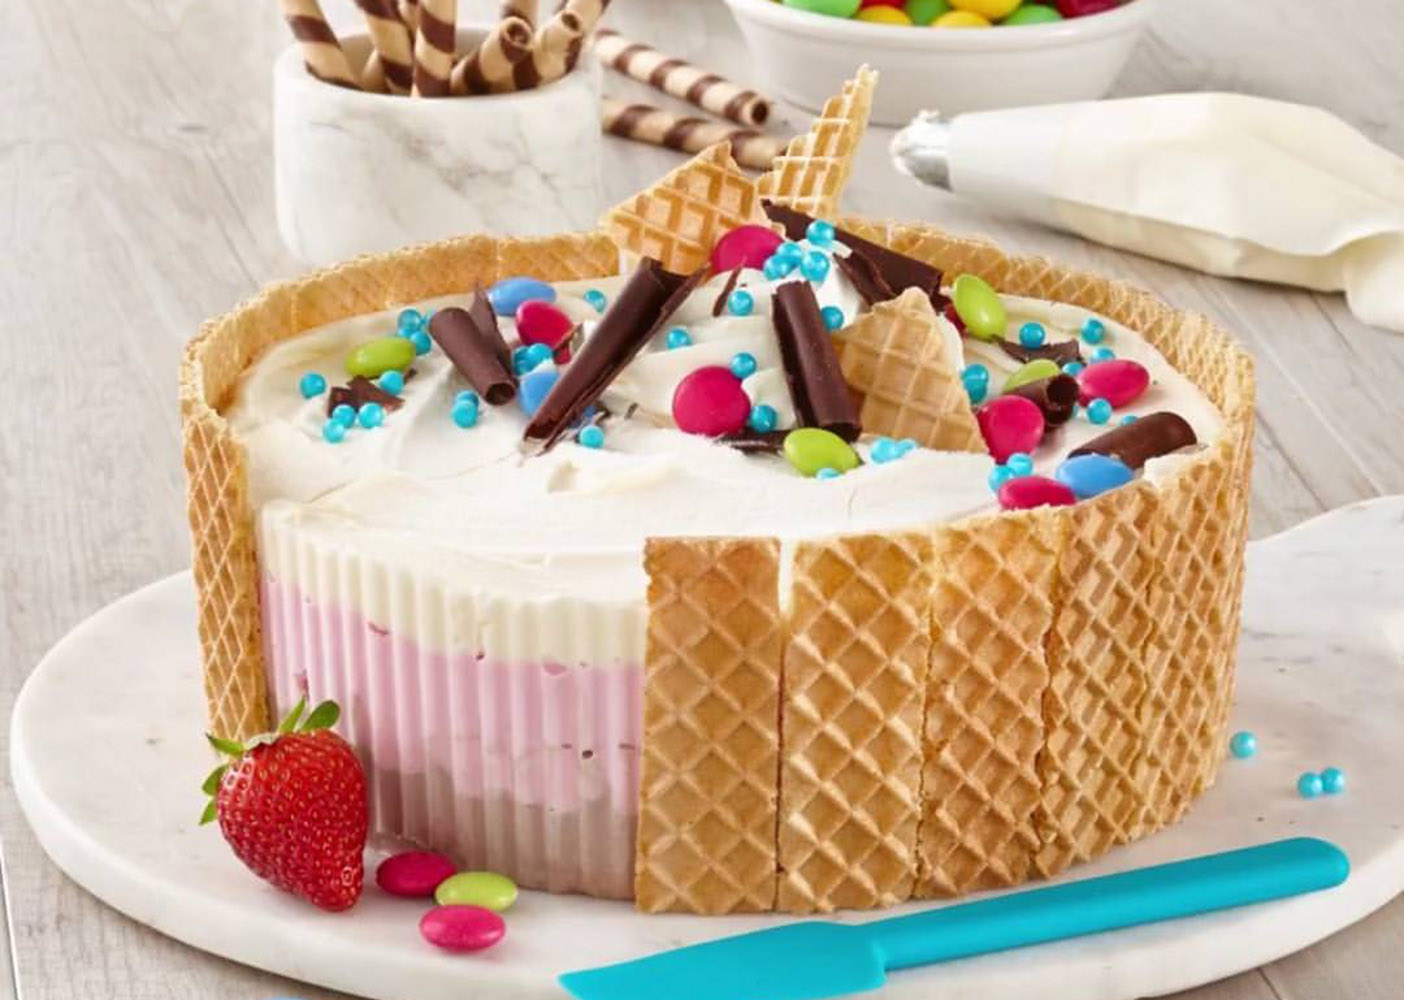 Food Safety Hazard Woolworths And Iga Recall Ice Cream Cake